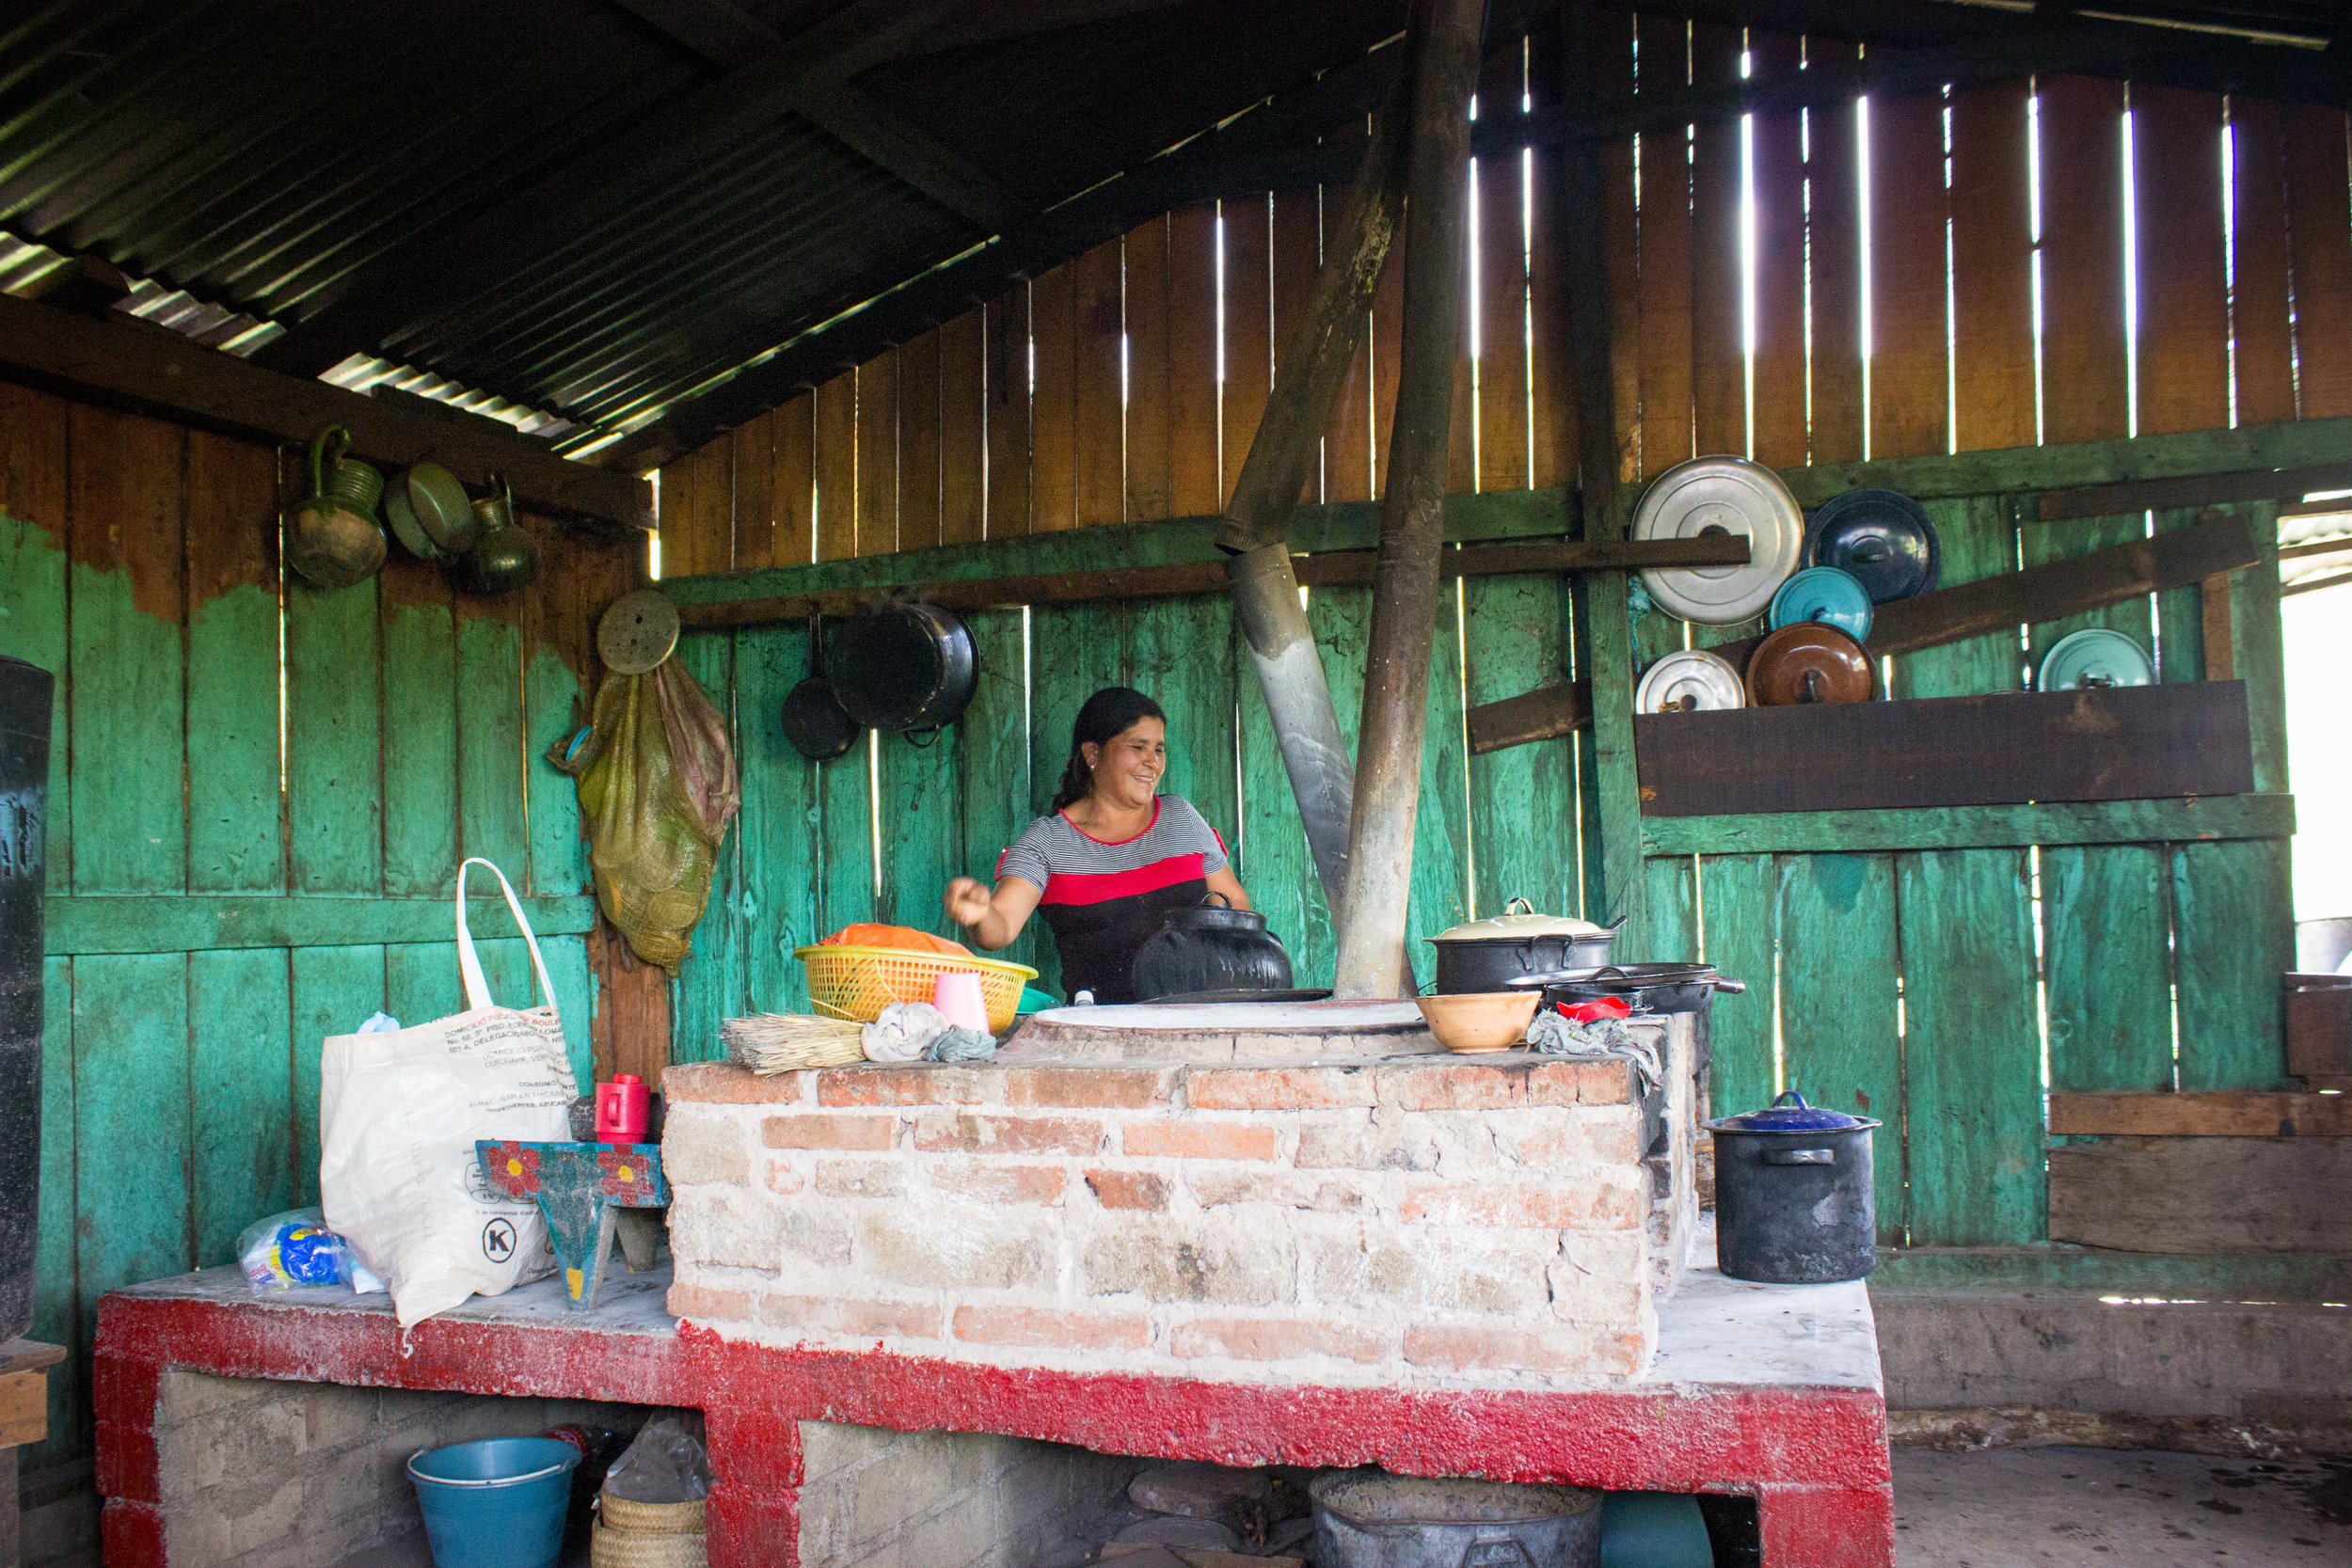 A neighbor in her kitchen, making a luncheon for all of us. In the villages, women cook over open fires in rooms separate from the homes.